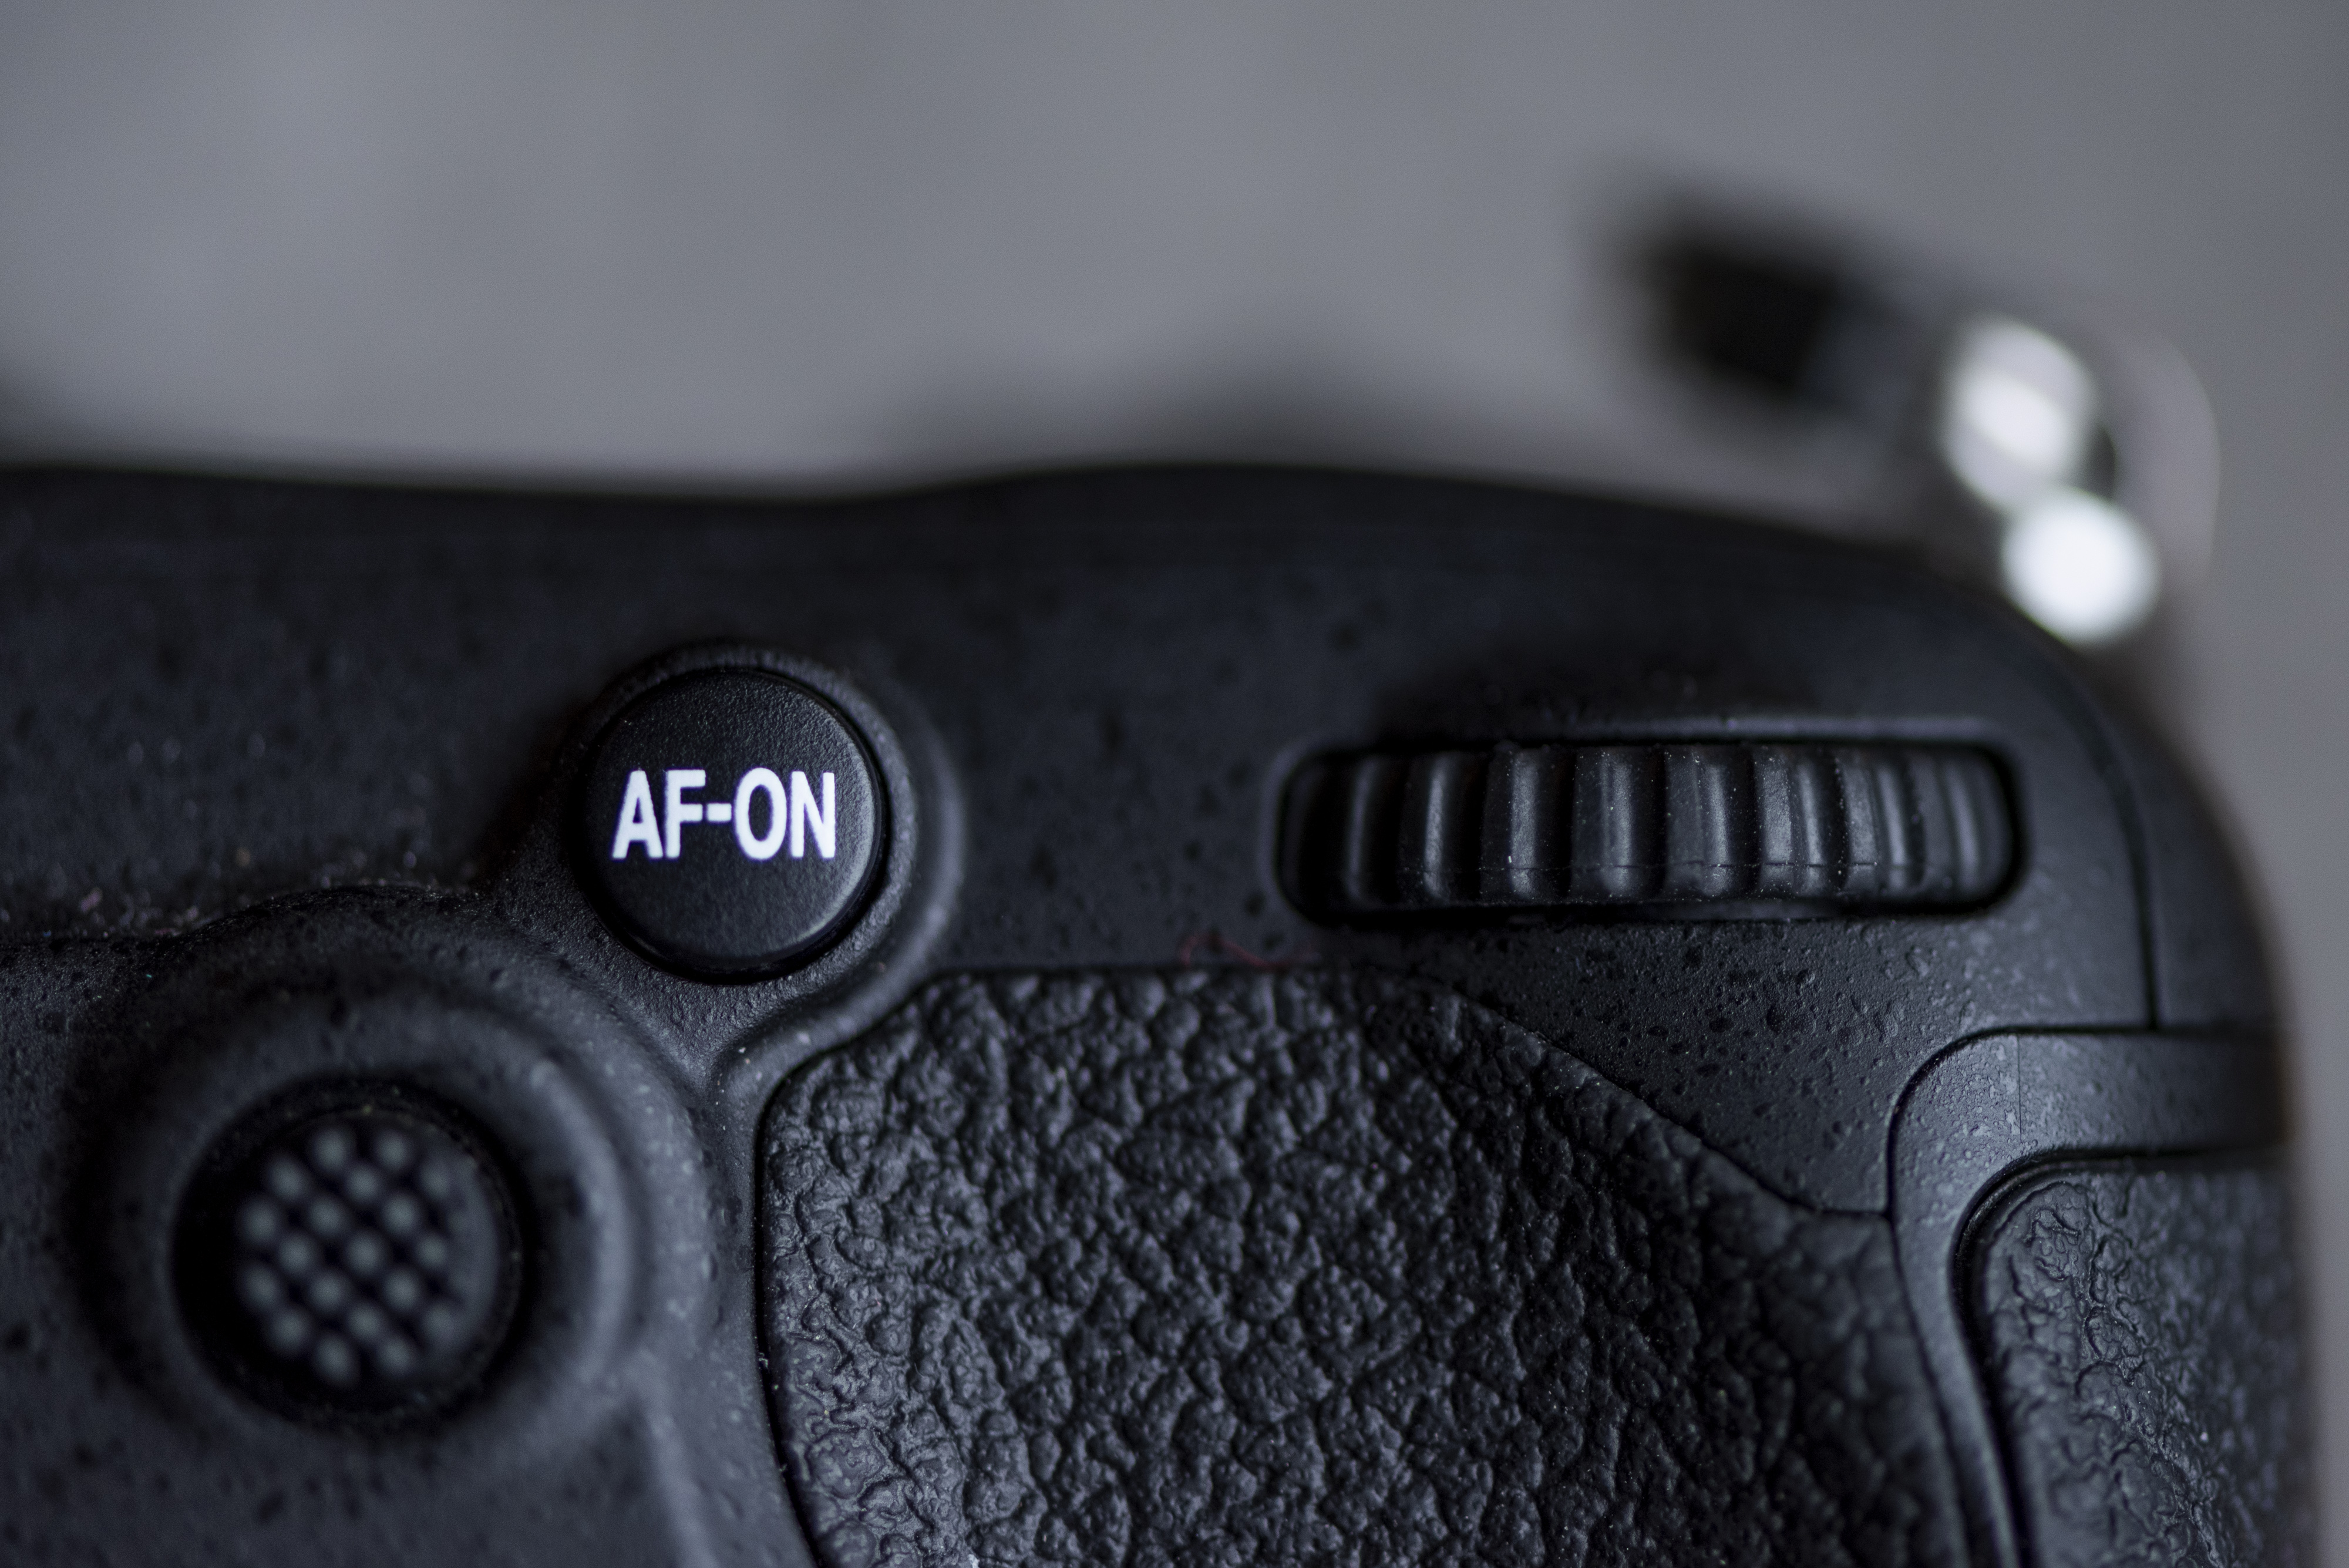 Close up of a DLRS with the AF-ON button